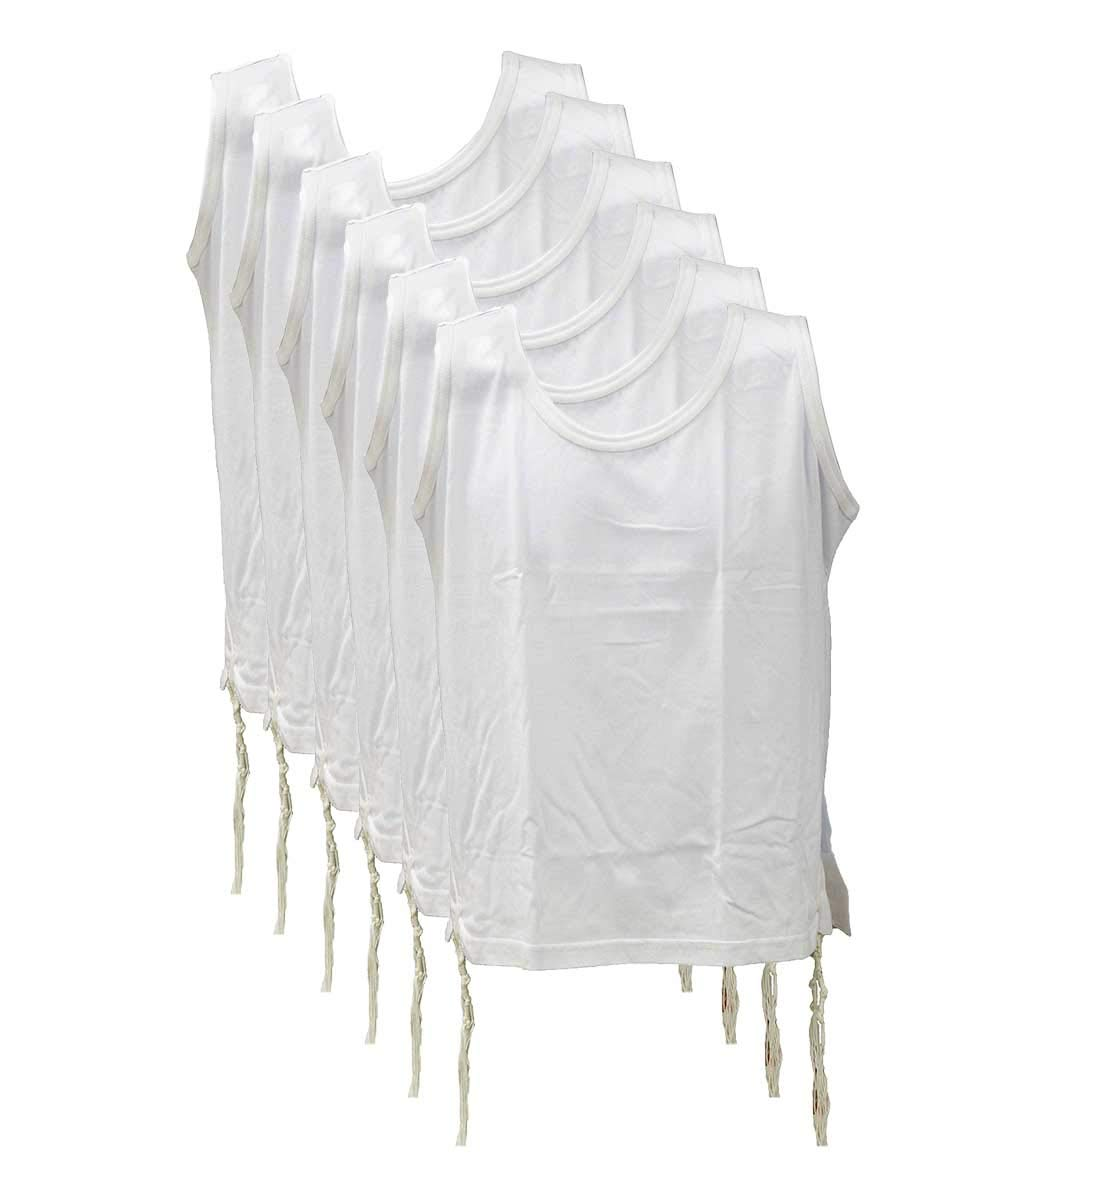 Zion Judaica 100% Cotton Comfortable Quality T-Shirt Tzitzis Garment Certified Kosher Imported from Israel in 4 (4T) 6 Pack White